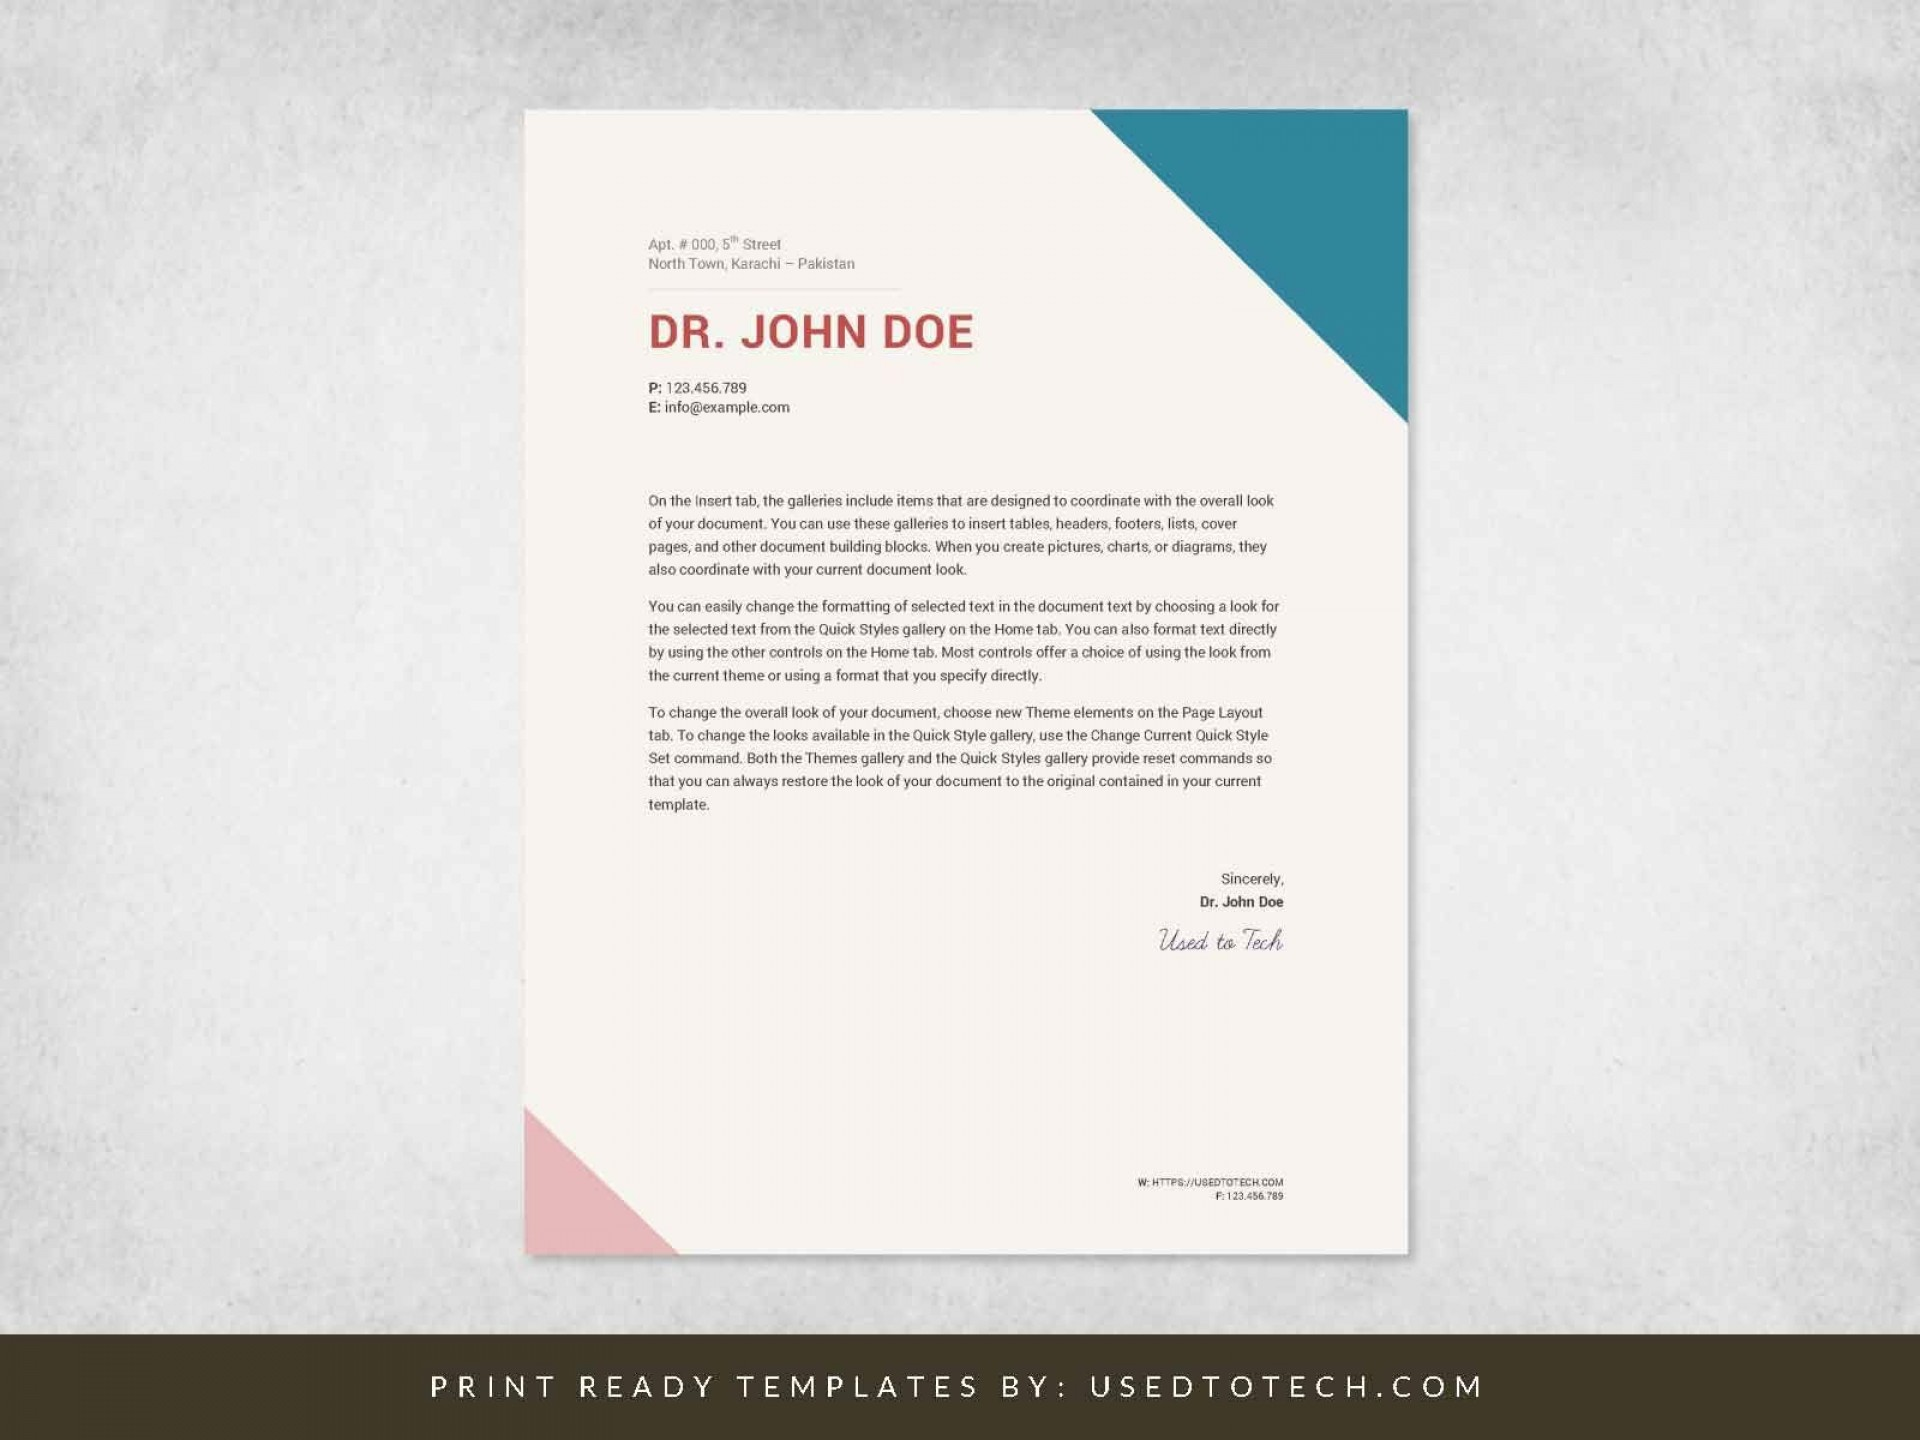 001 Astounding Doctor Letterhead Format In Word Free Download Design 1920